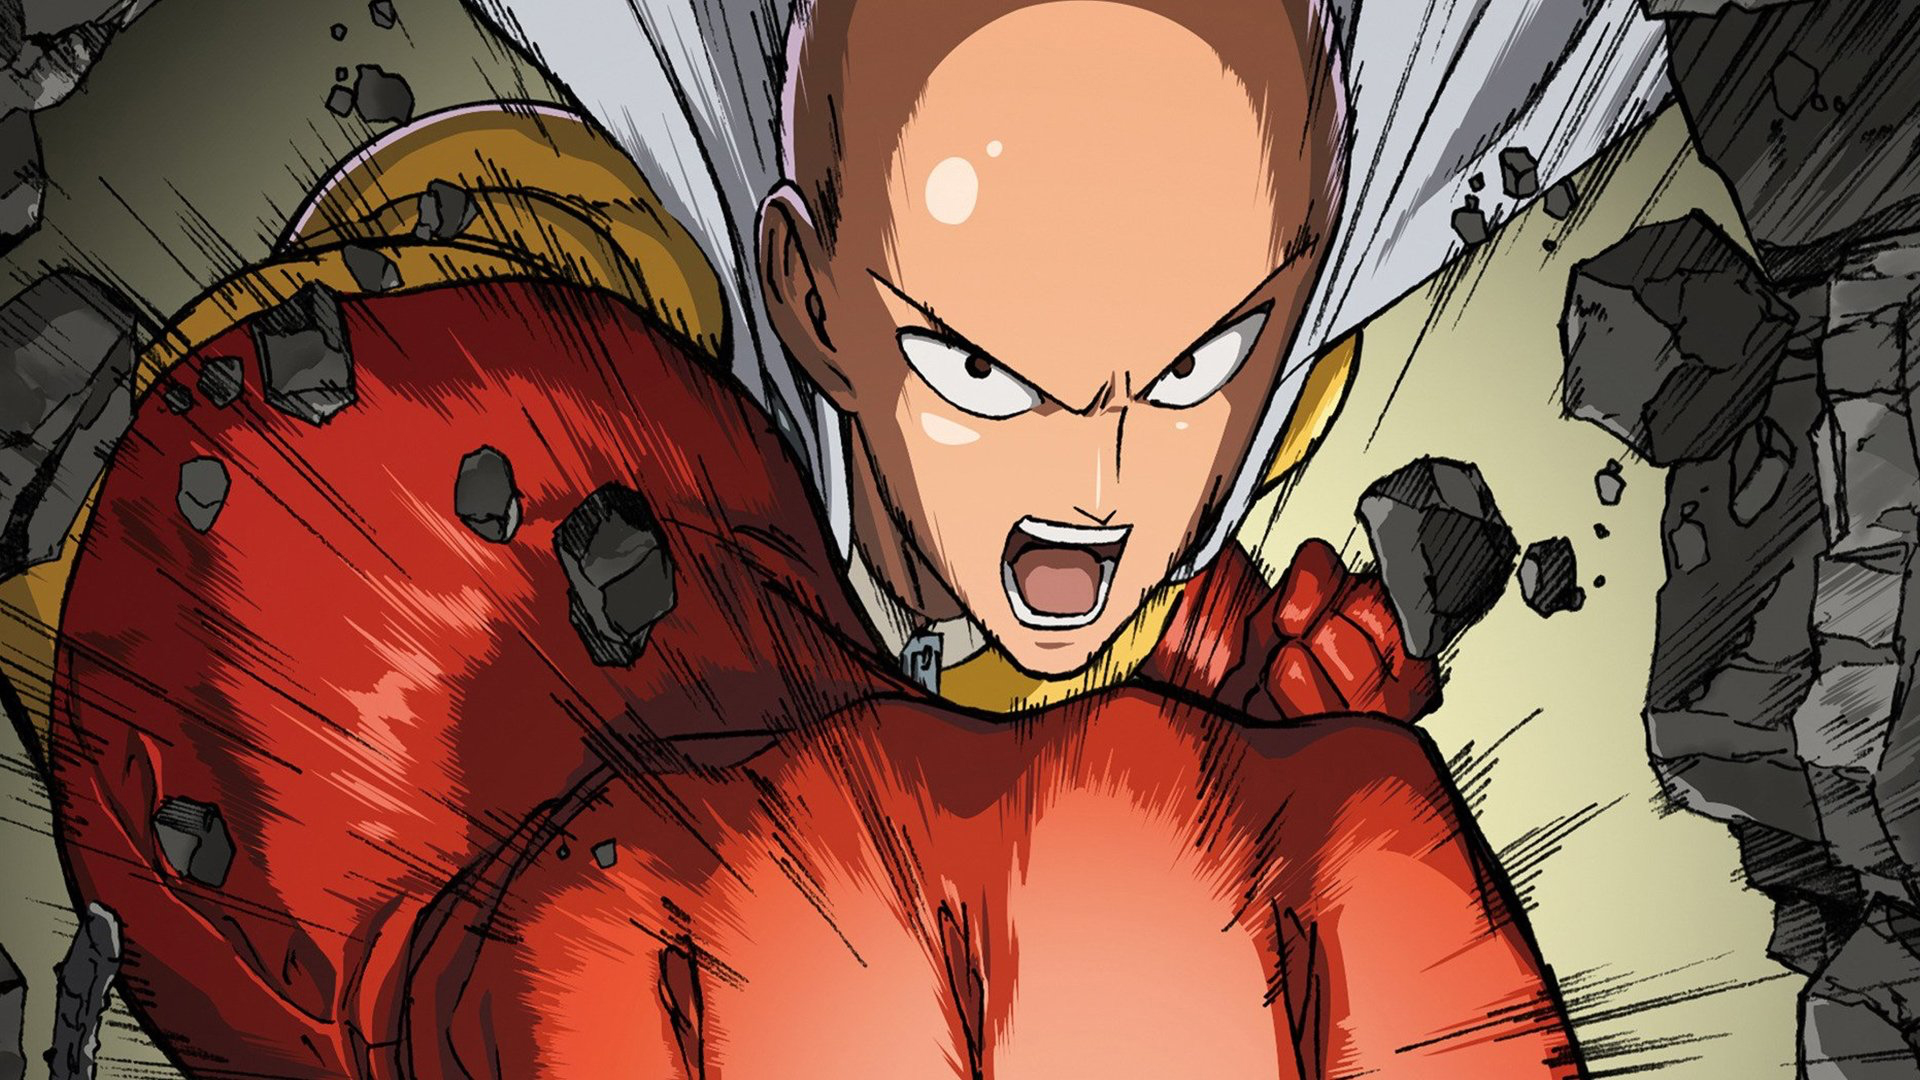 One Punch Man Season 3 Release Date to be Announced with Season 2 OVA Volume 6 Launch